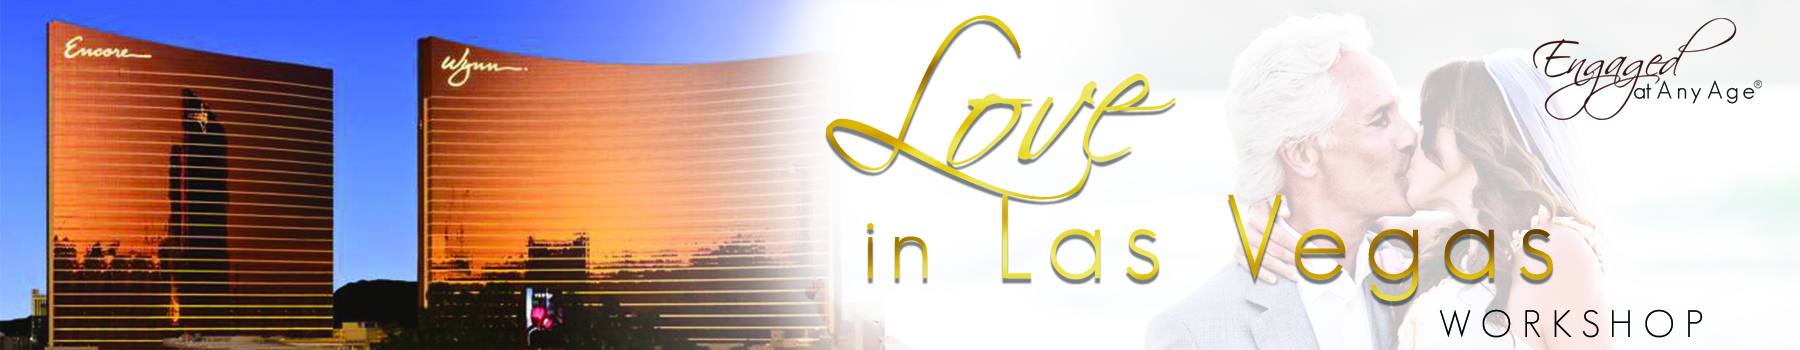 Love in Las Vegas Workshop hosted by Jaki Sabourin and Engaged At Any Age